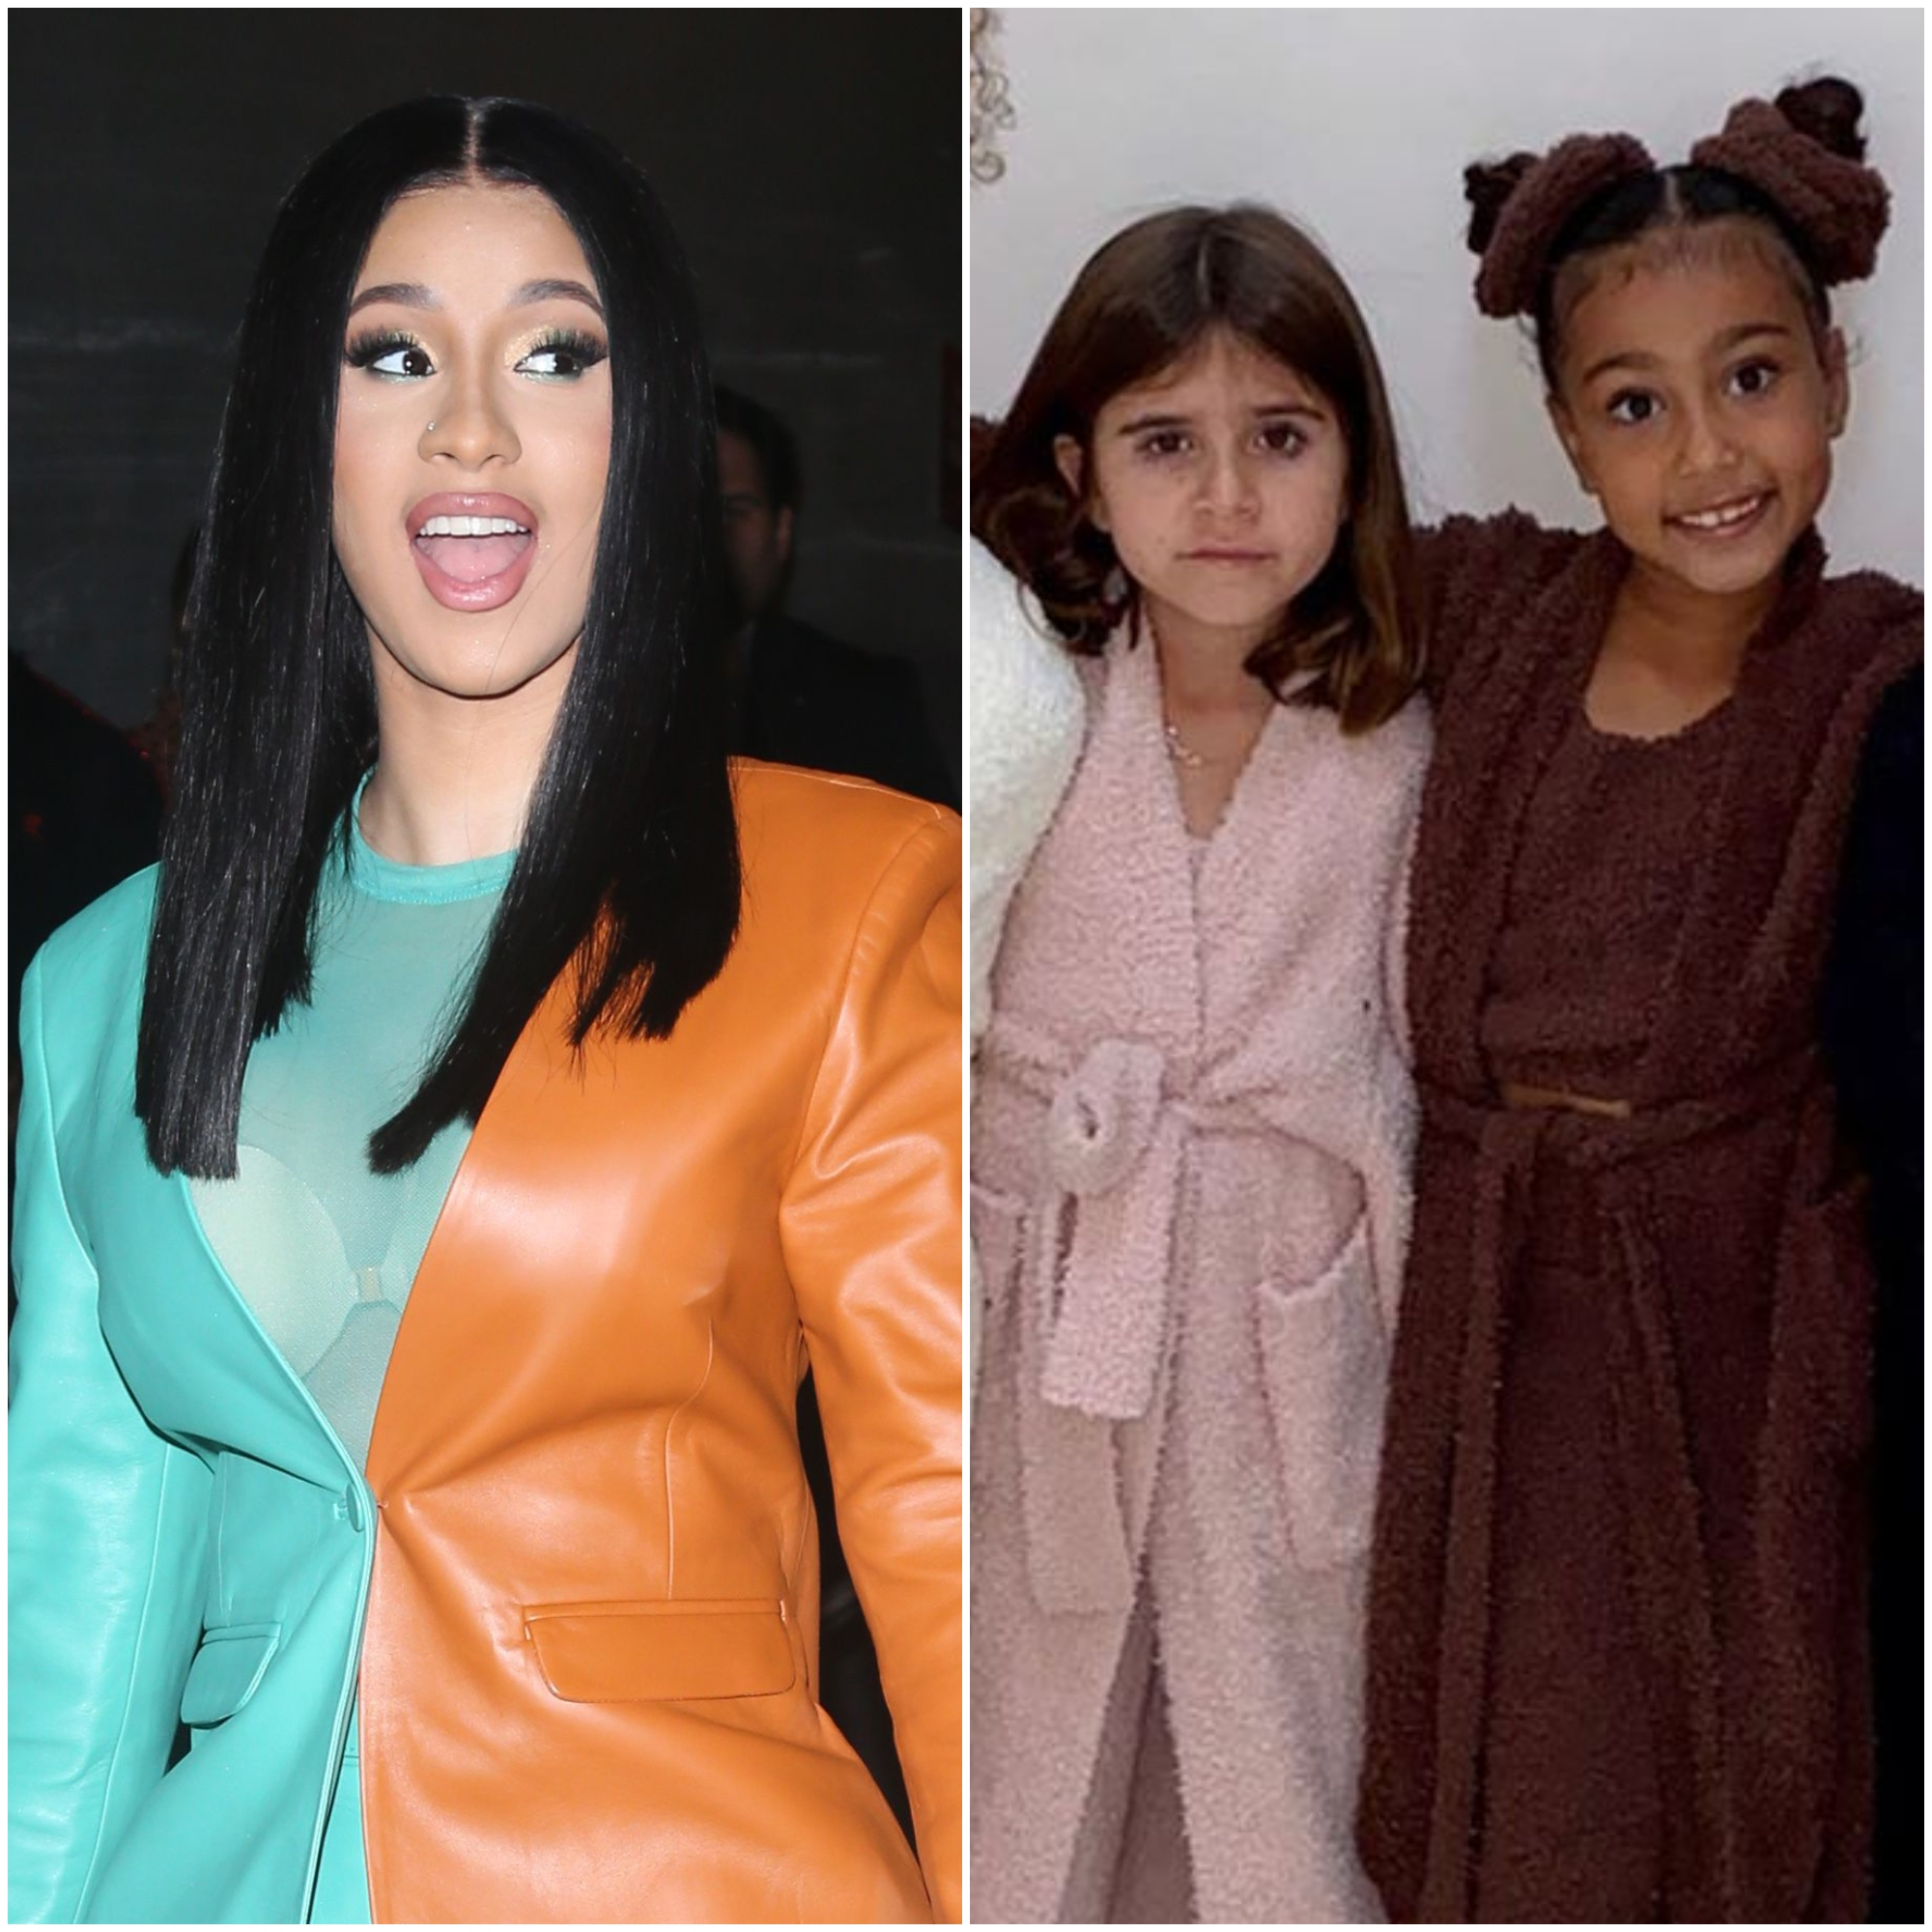 Cardi B Reacts to North West and Penelope Disick's 'Cardi Crew' Video: 'I Feel So Happy'